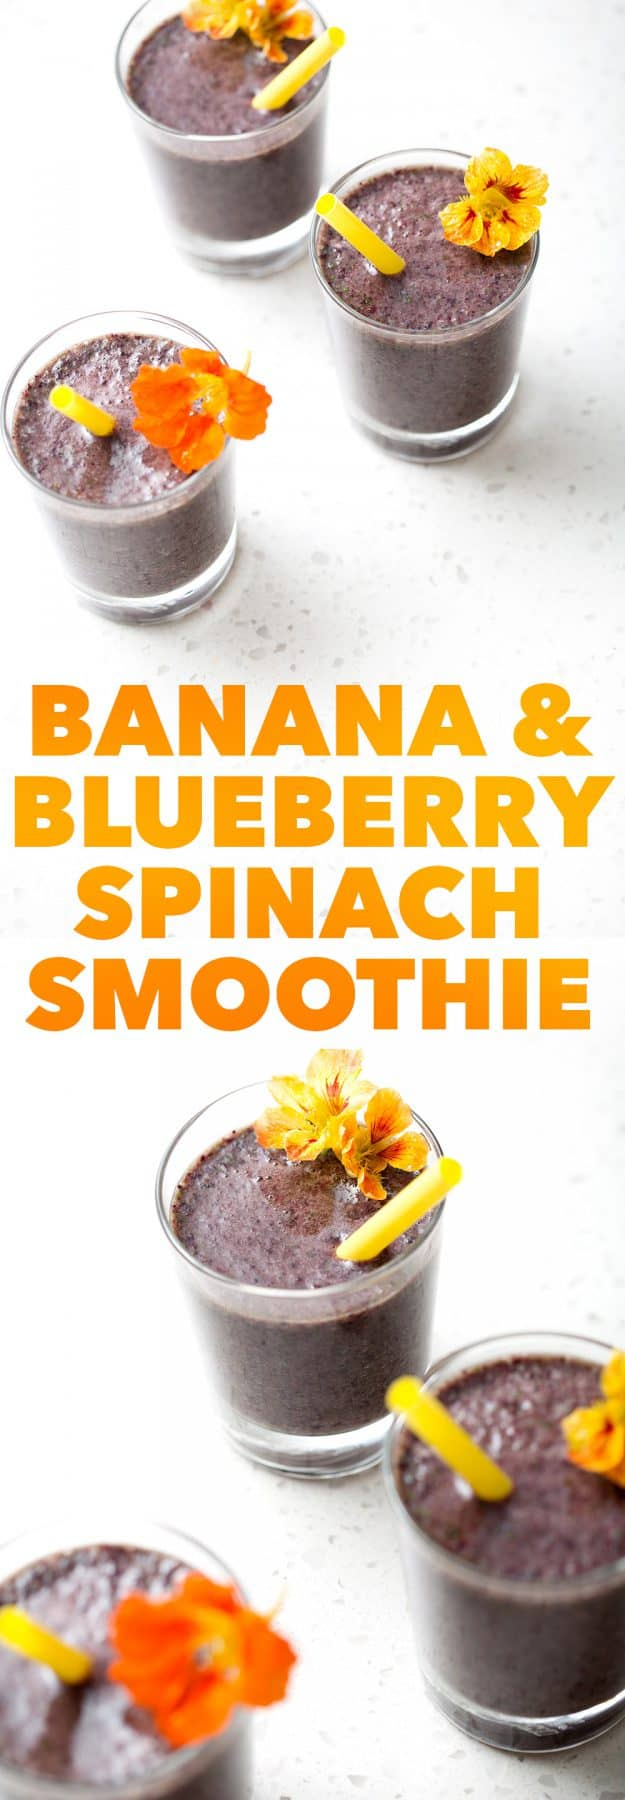 This Banana and Blueberry Spinach Smoothie is a healthy snack or addition to a meal. It's a fruity smoothie filled with leafy greens that your kids (big or small) will enjoy. This recipe is allergy friendly (gluten, dairy, shellfish, nut, egg, and soy free) and suits the autoimmune protocol (AIP) and paleo diets.